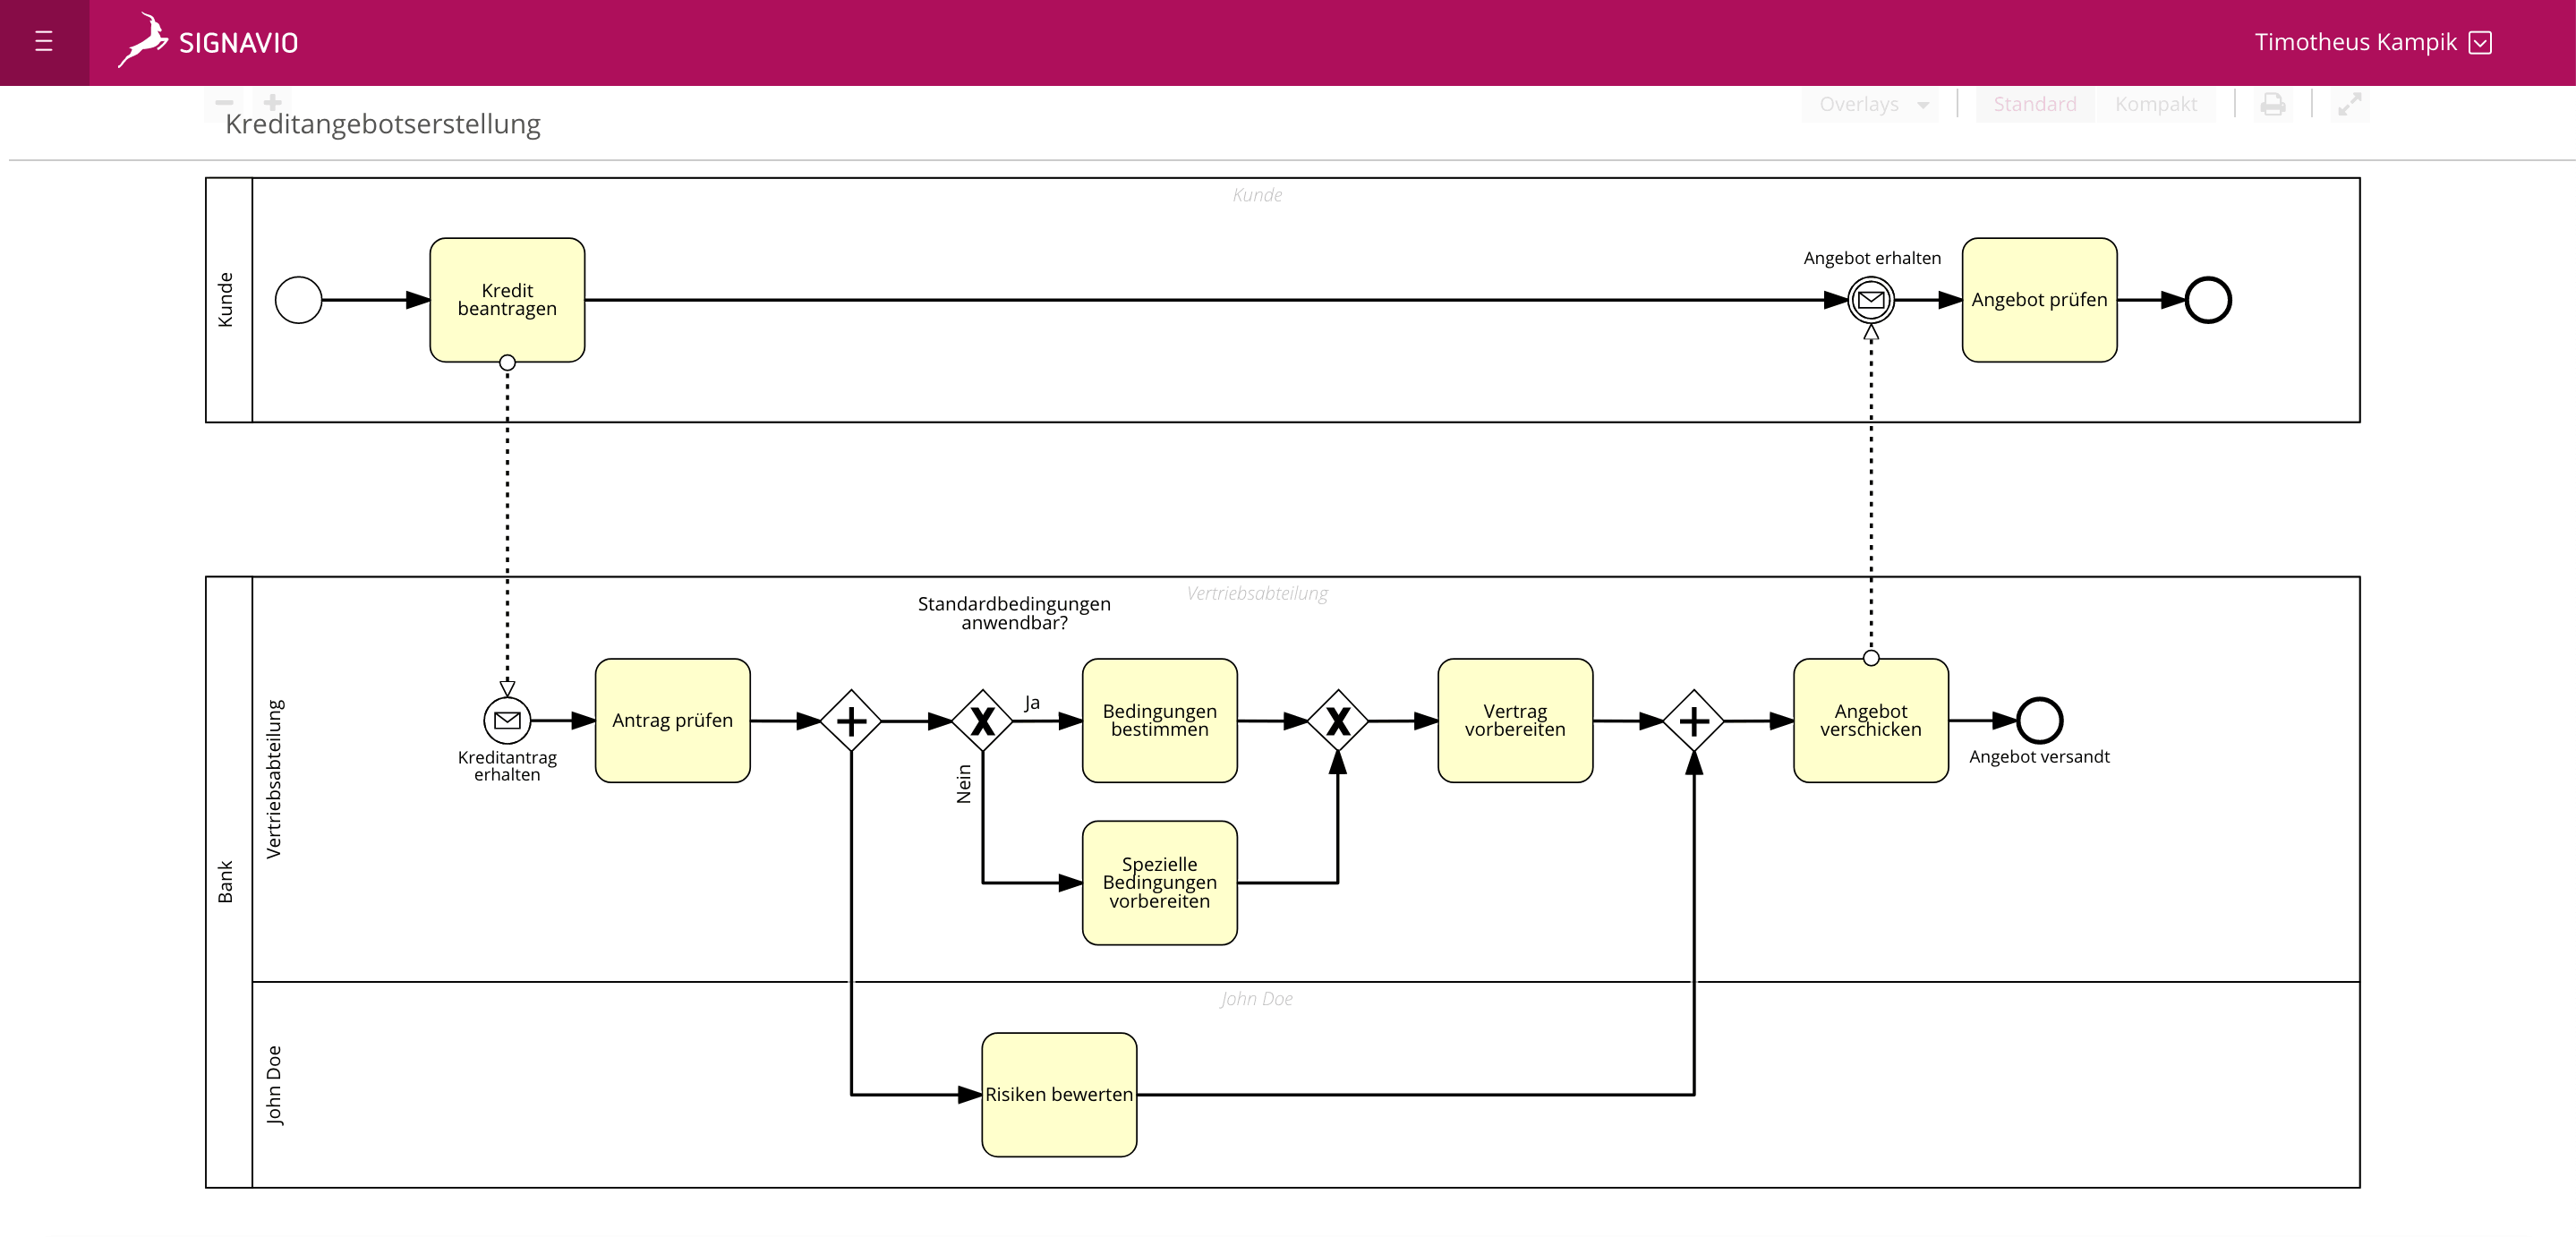 BPMN Pools and Lanes - Kreditbewilligungsantrag